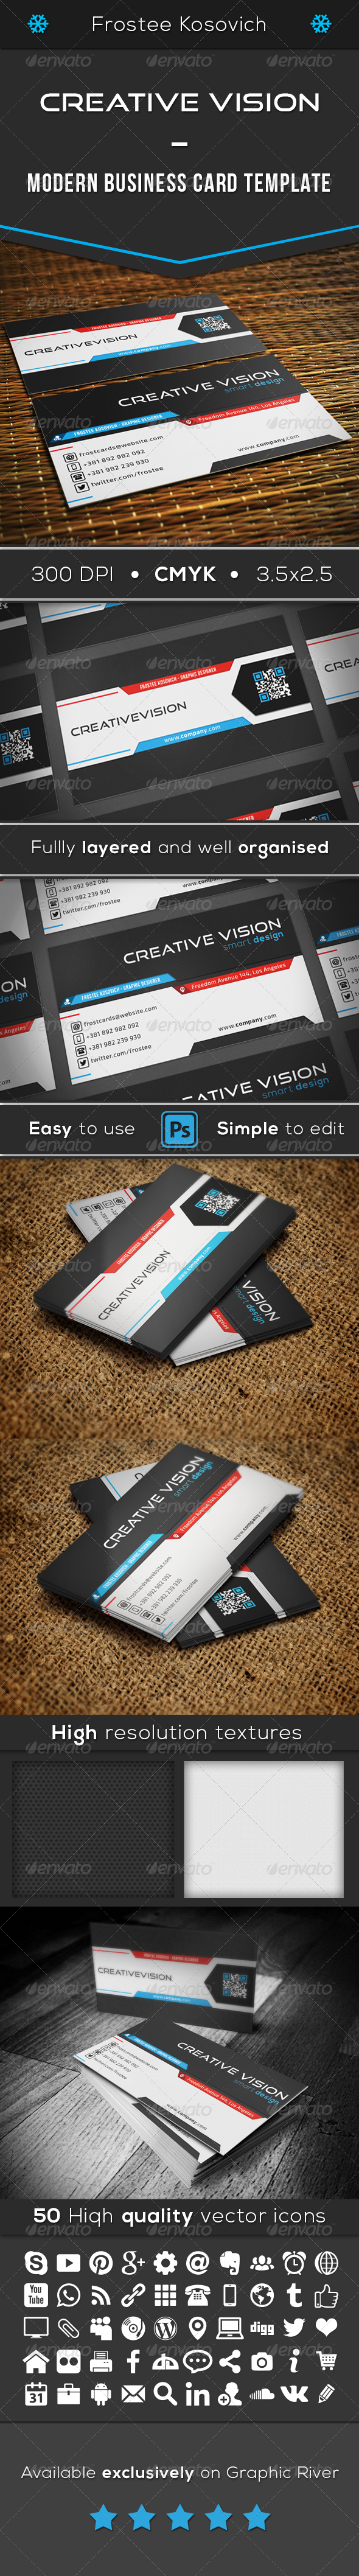 GraphicRiver Creative Vision Modern Business Card Template 8542946